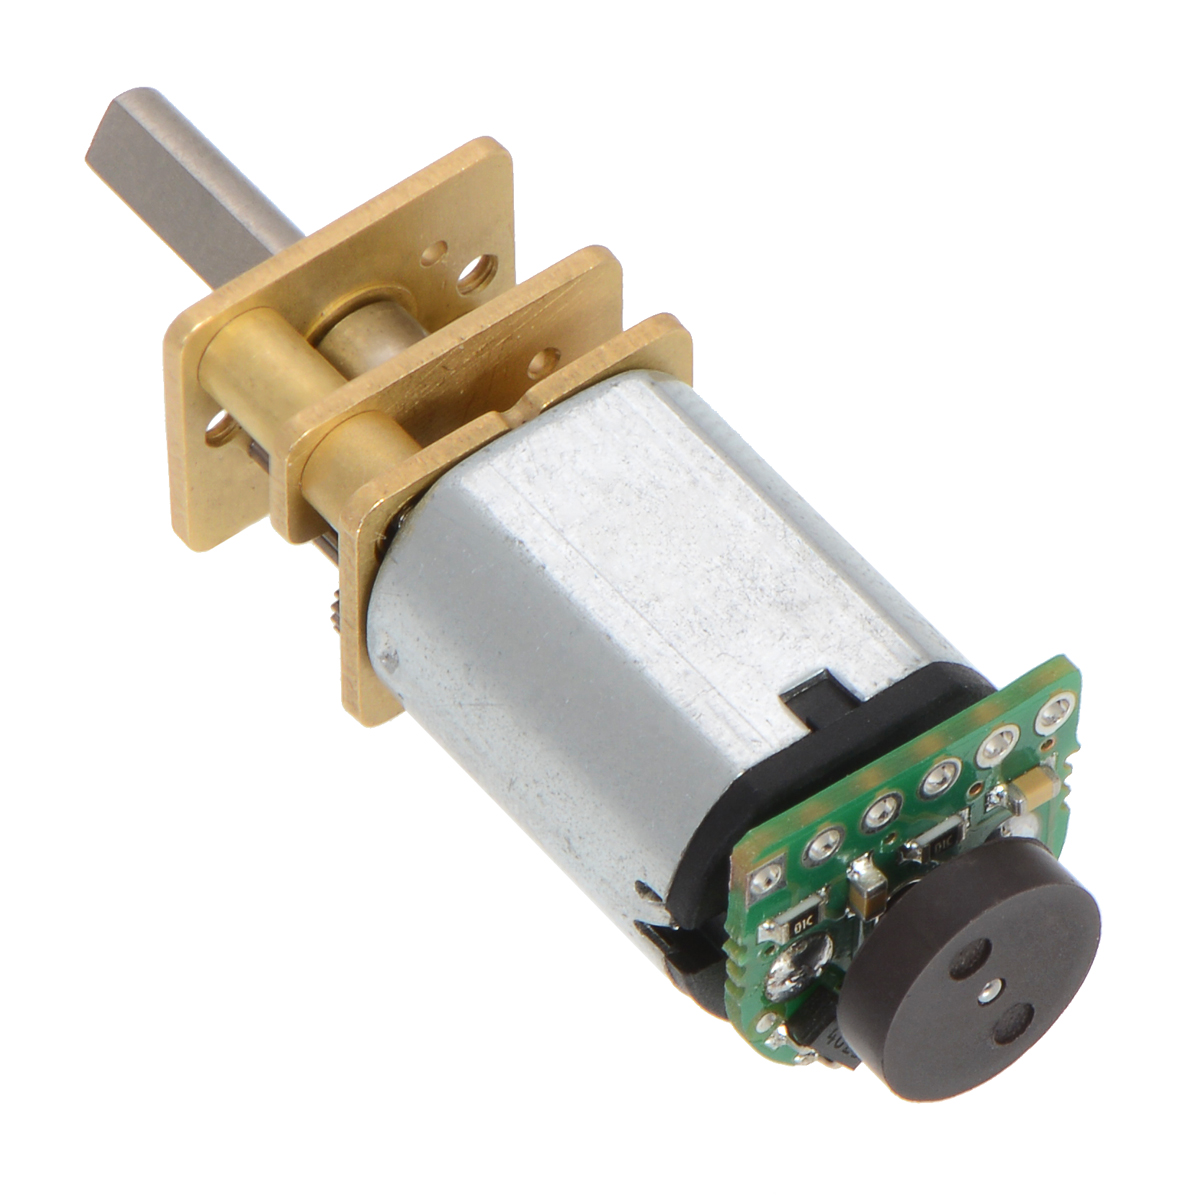 Pololu new products magnetic quadrature encoders for for Arduino encoder motor control